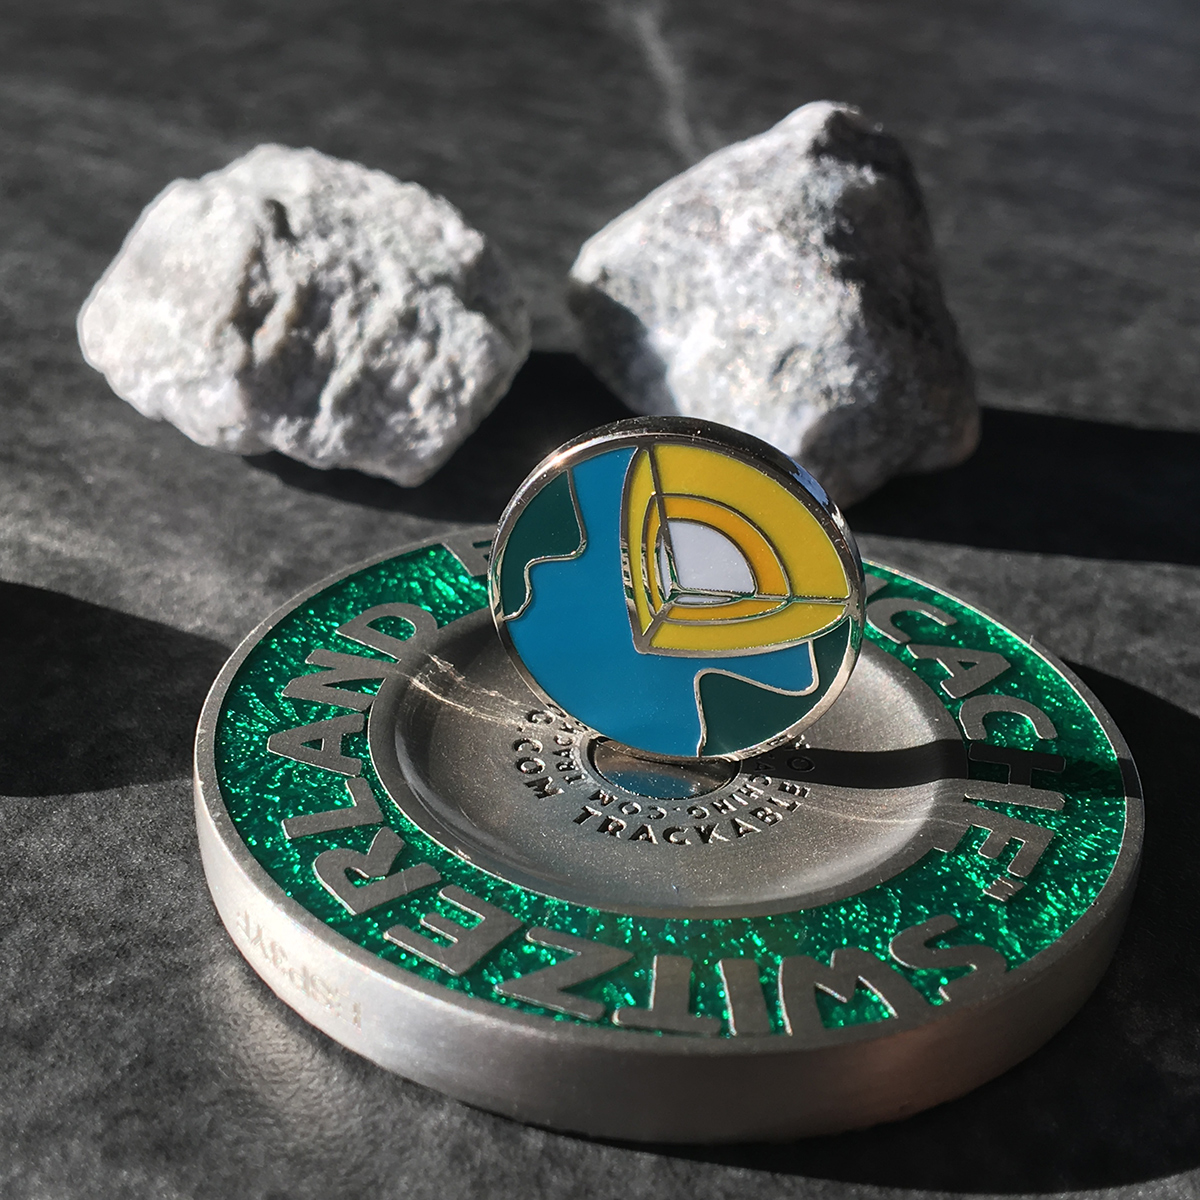 earthcache switzerland geocoin as